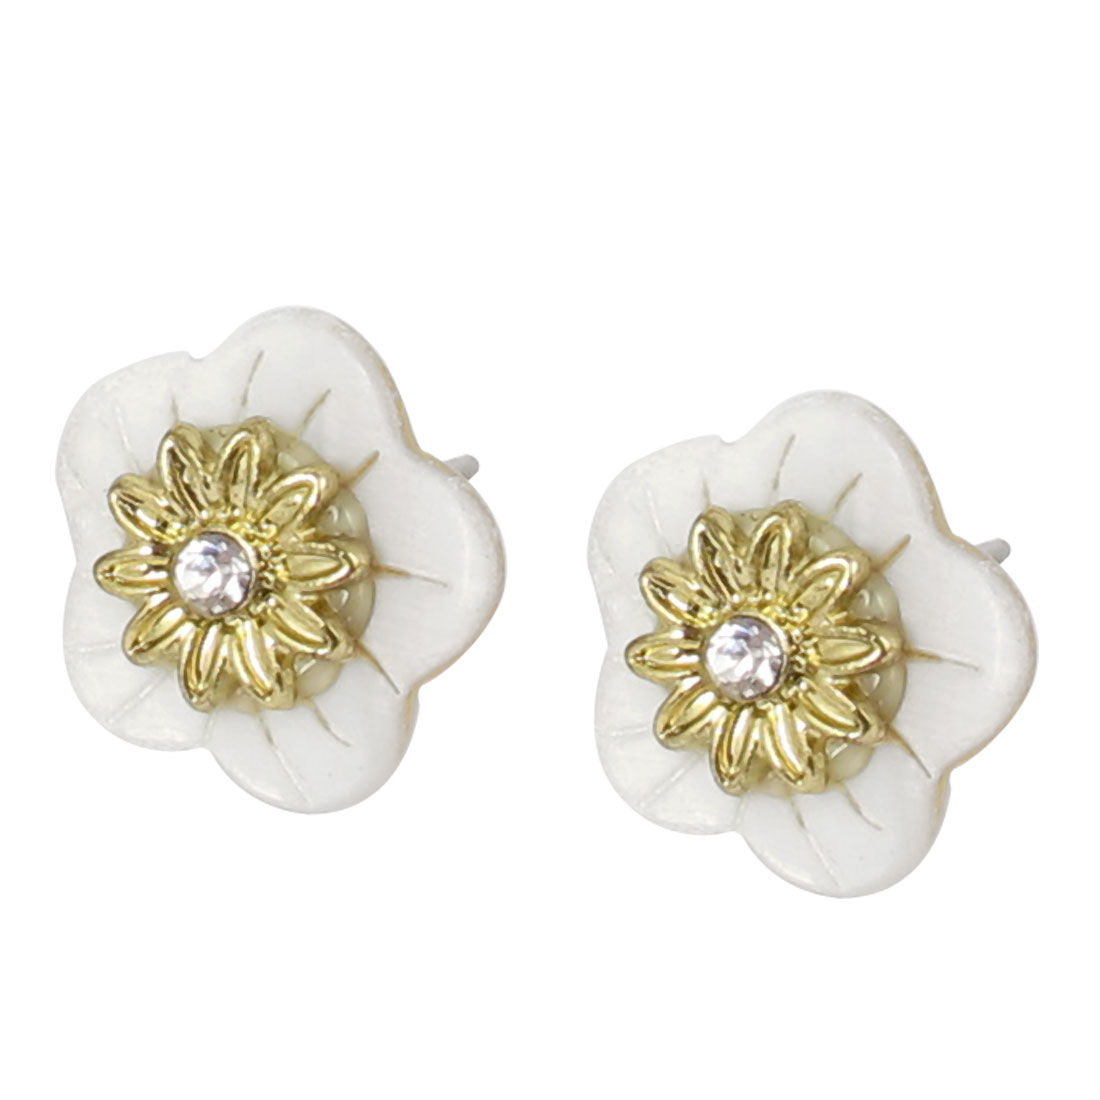 Women Metal Double Layers Flowers Shape Plastic Crystal Inlaid Pierced Stud Pin Ear Nail Earrings Earbobs Gold Tone White 1.7CM Pair